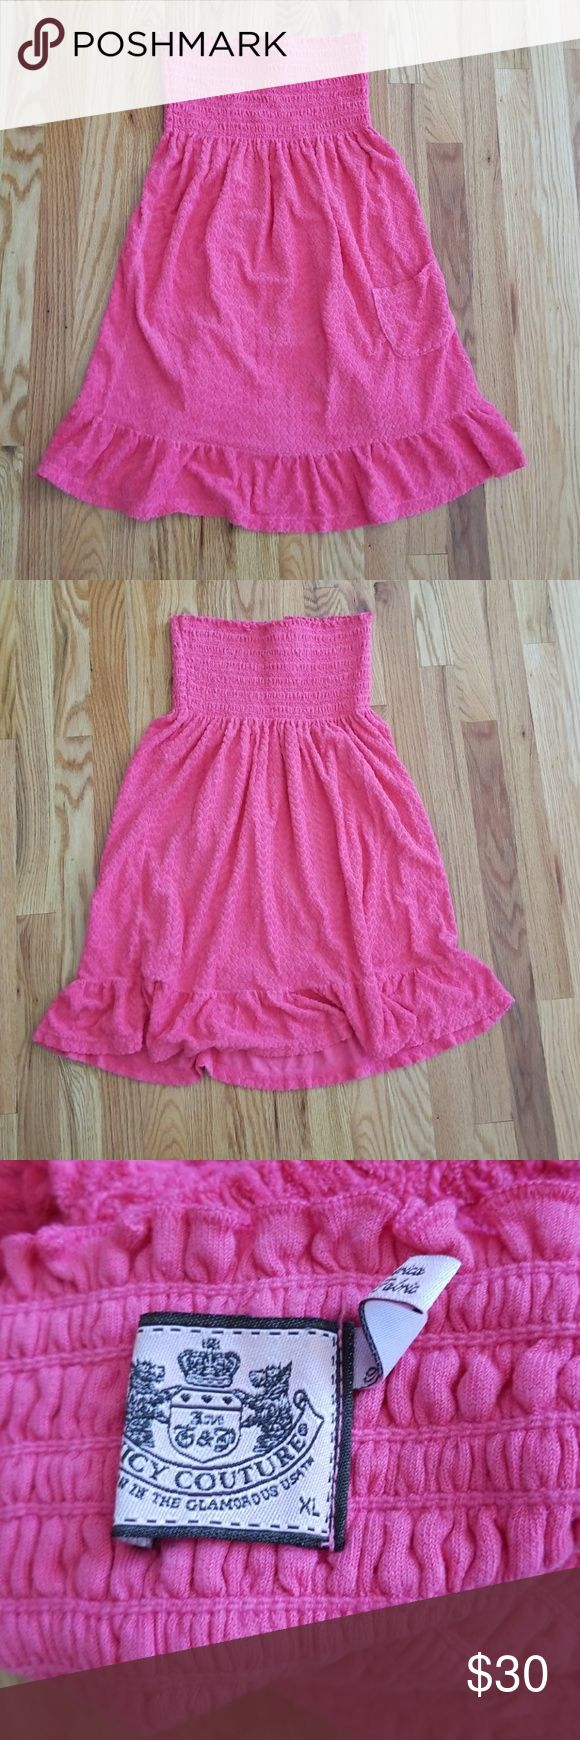 Beach Cover Up Juicy Couture pink 💓 printed Terry cloth material! This dress has alittle ruffle on the edge of the skirt. Its great for lunch by the beach, walking on the boardwalk or a cover up after a swim! It's banded top makes for a comfortable stretchy tube top. Size XL can stretch but will fit better as a size large. Juicy Couture Dresses